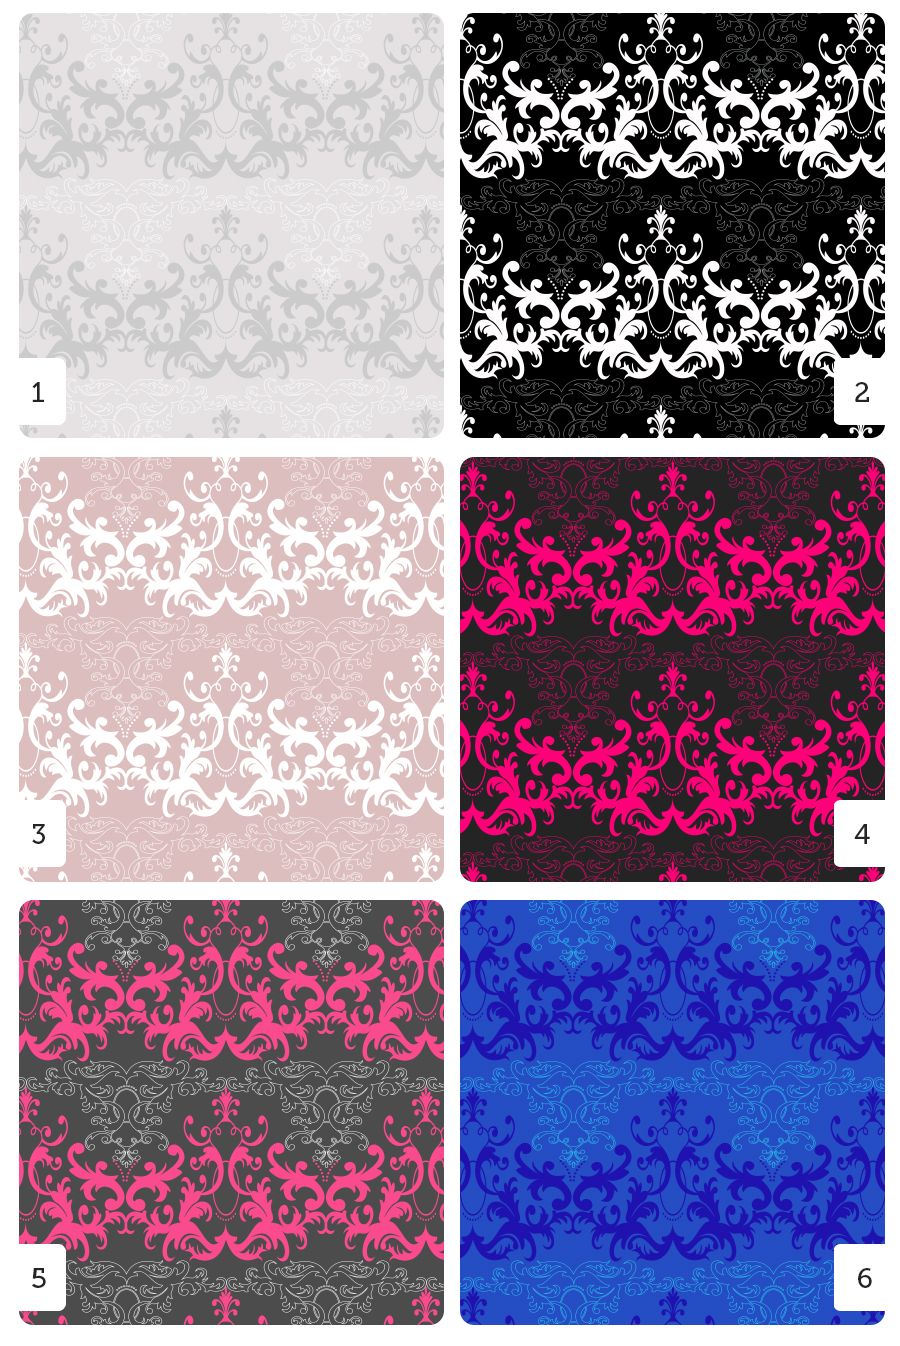 6 different patterns based on my Chandelier pattern